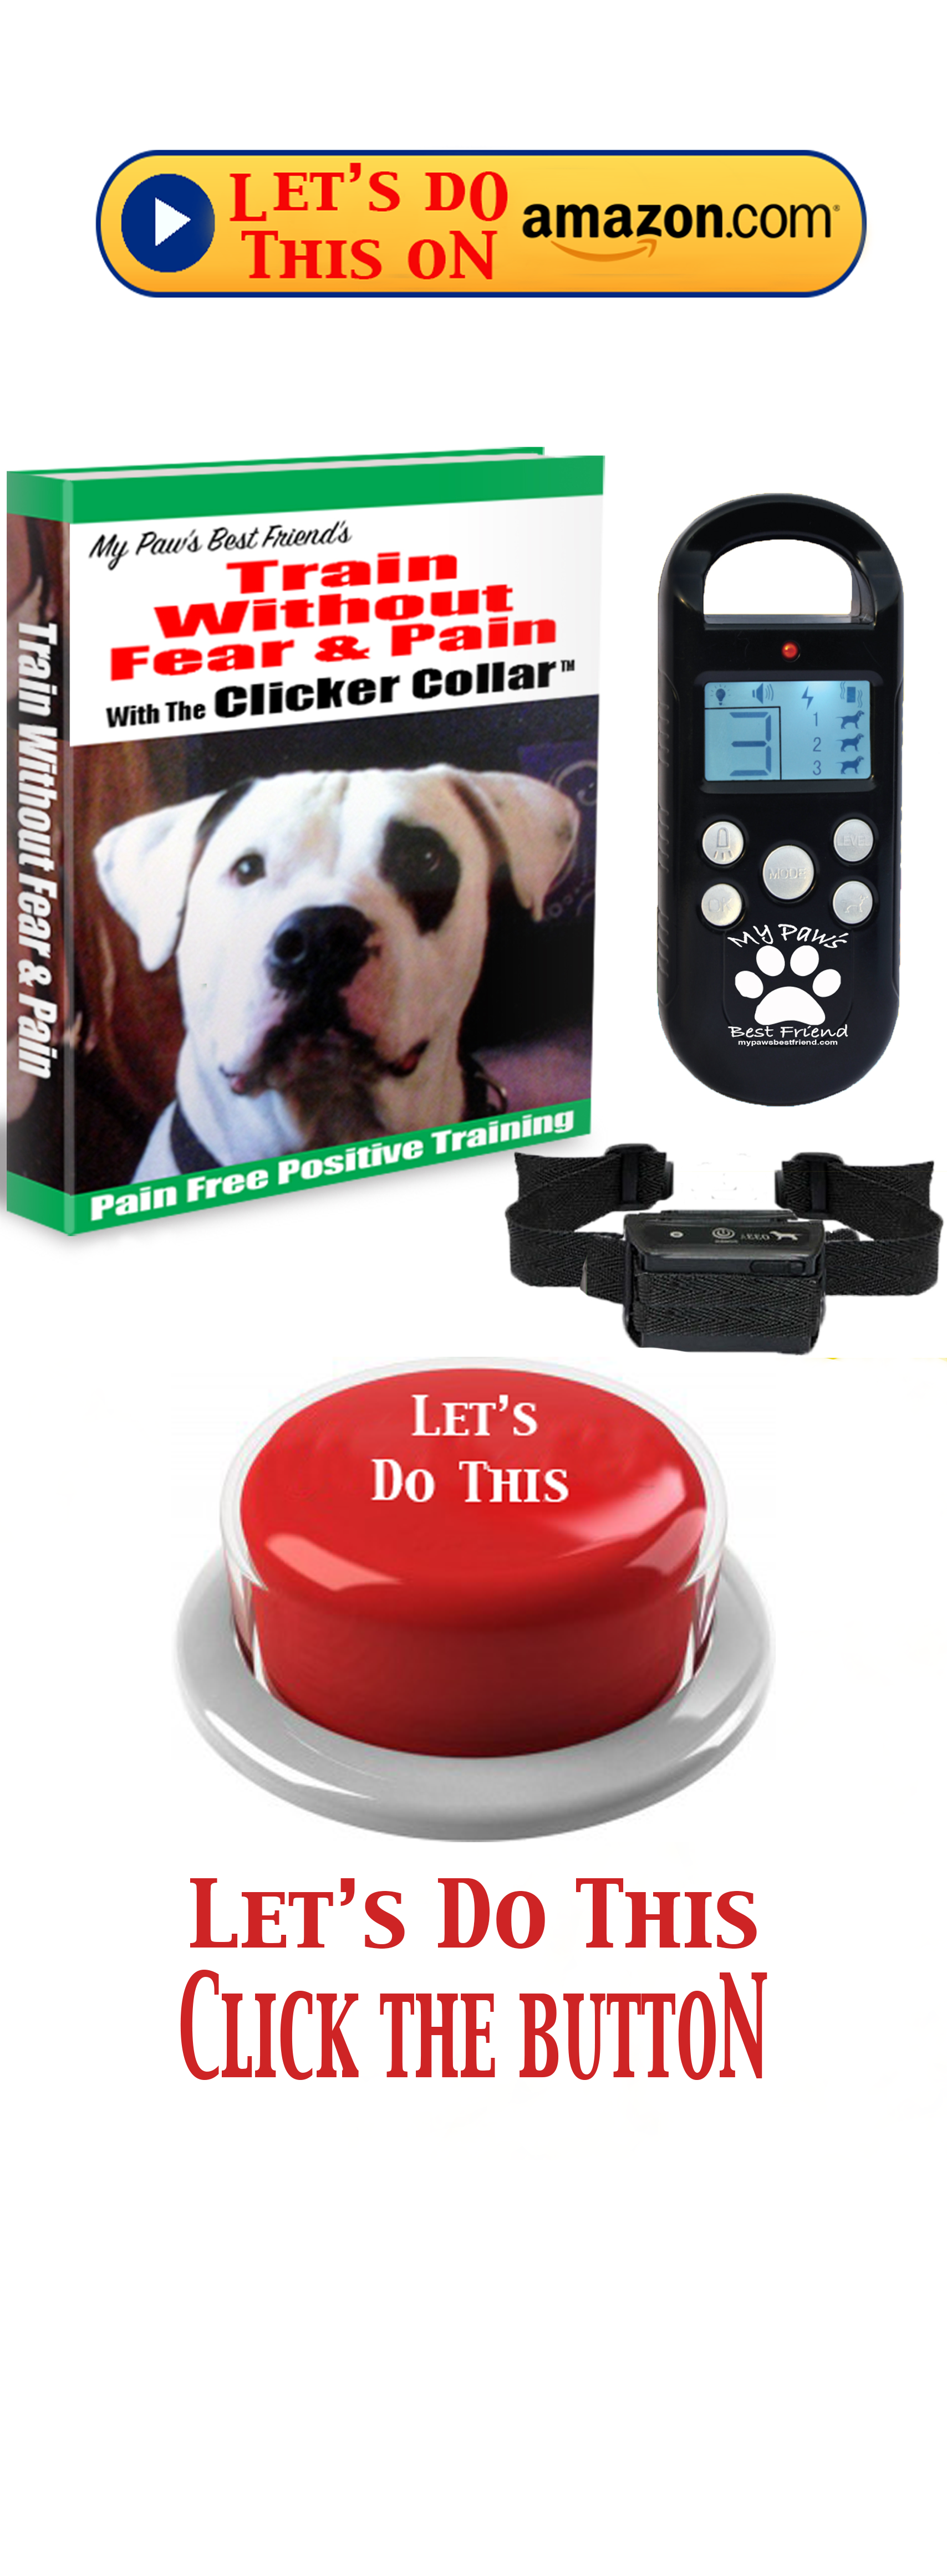 Link to buy the dog training collar that teaches you how to stop a dog from barking